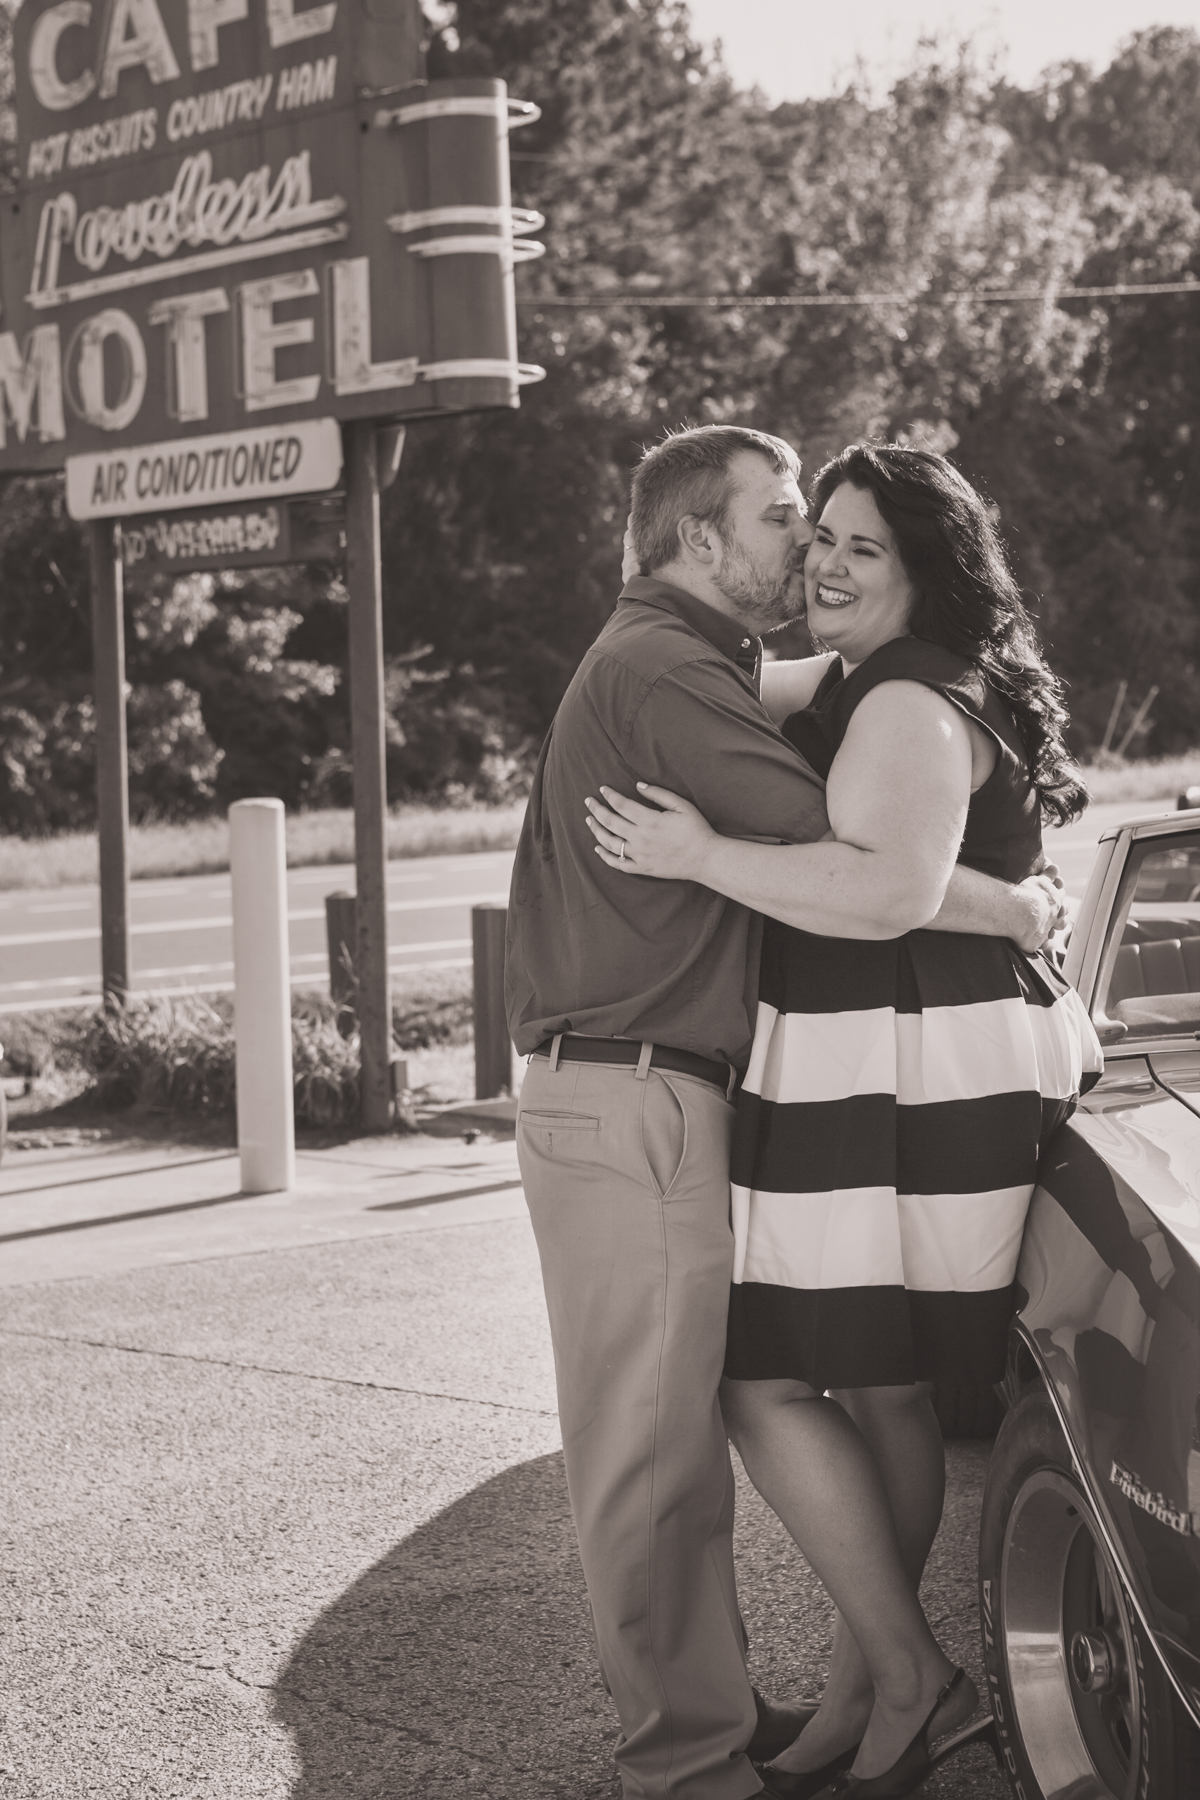 We love black and white photos and it works so great with these two!